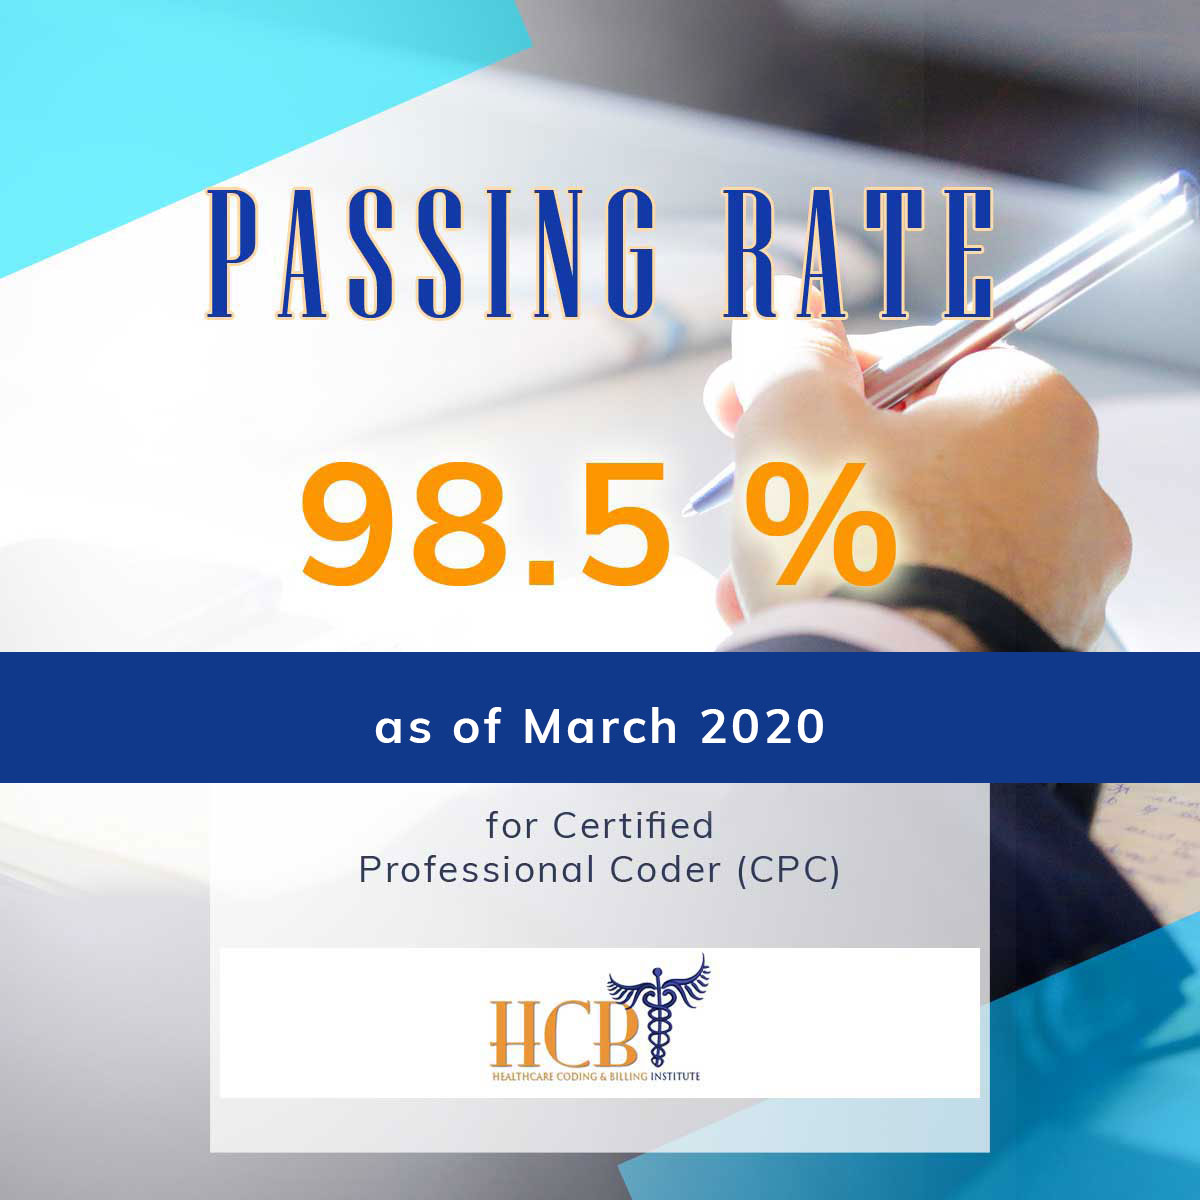 Passing-Rate-post20190917, hcbi